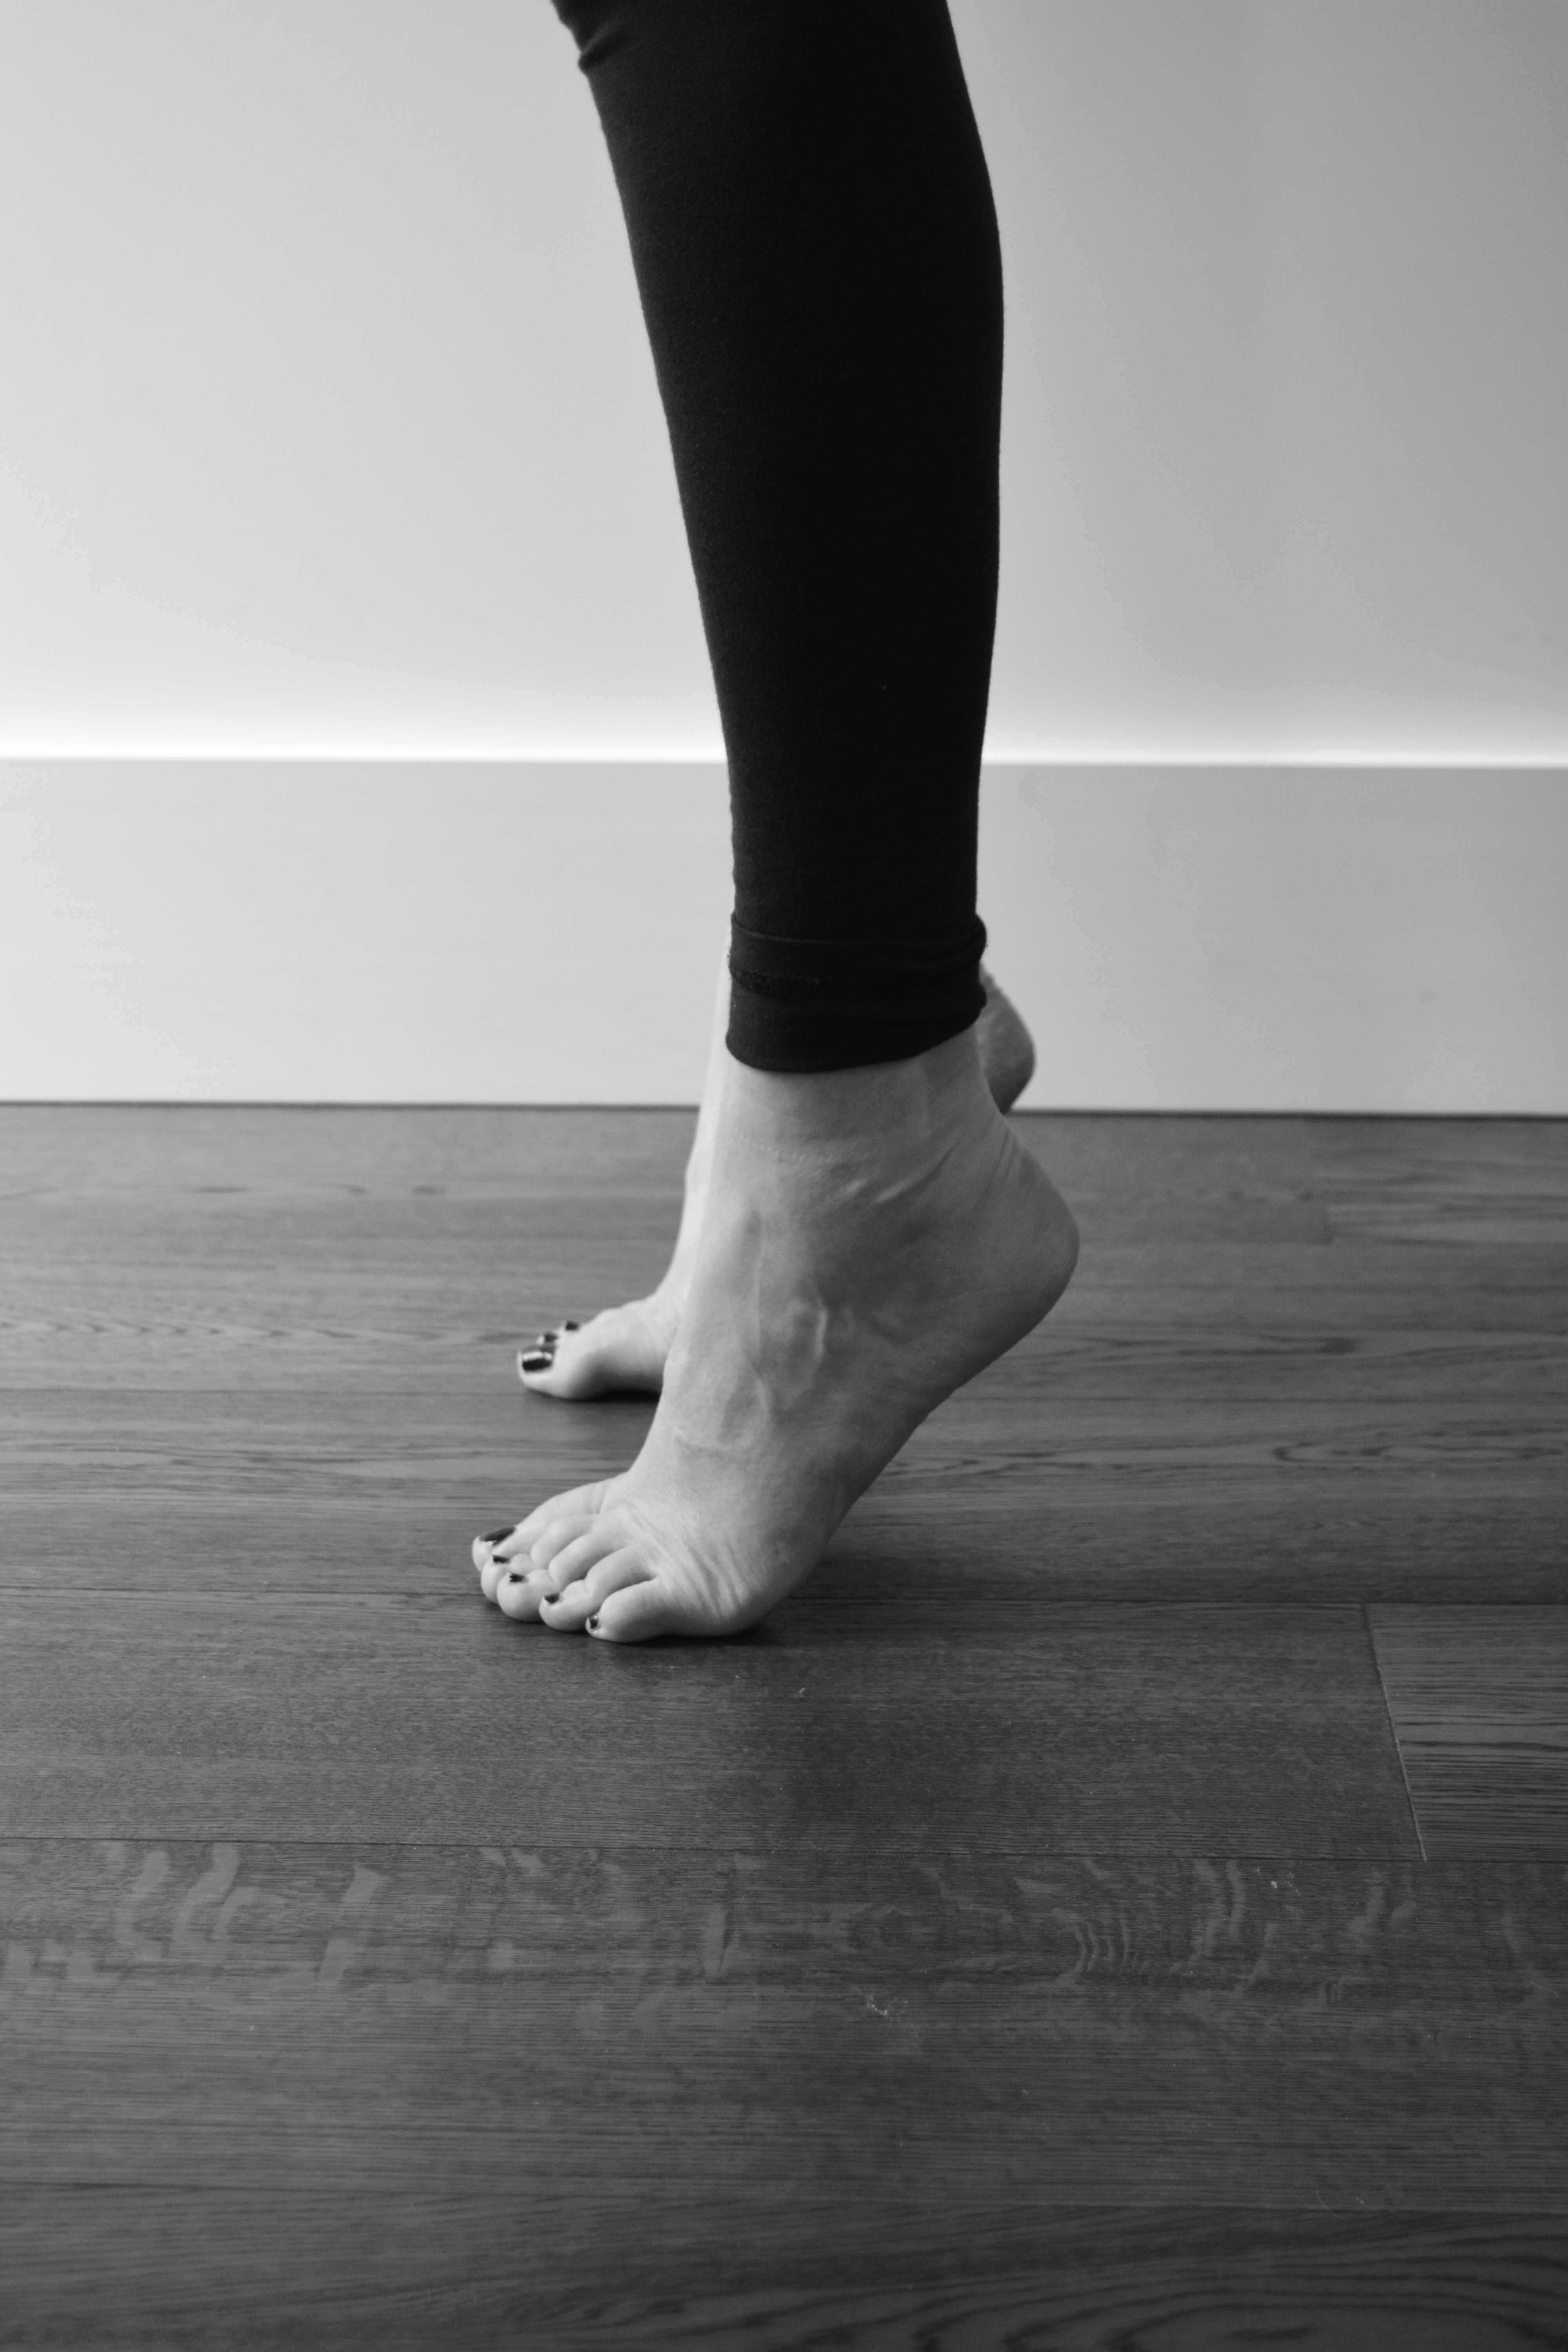 Isometric exercise for the achilles tendinopathy